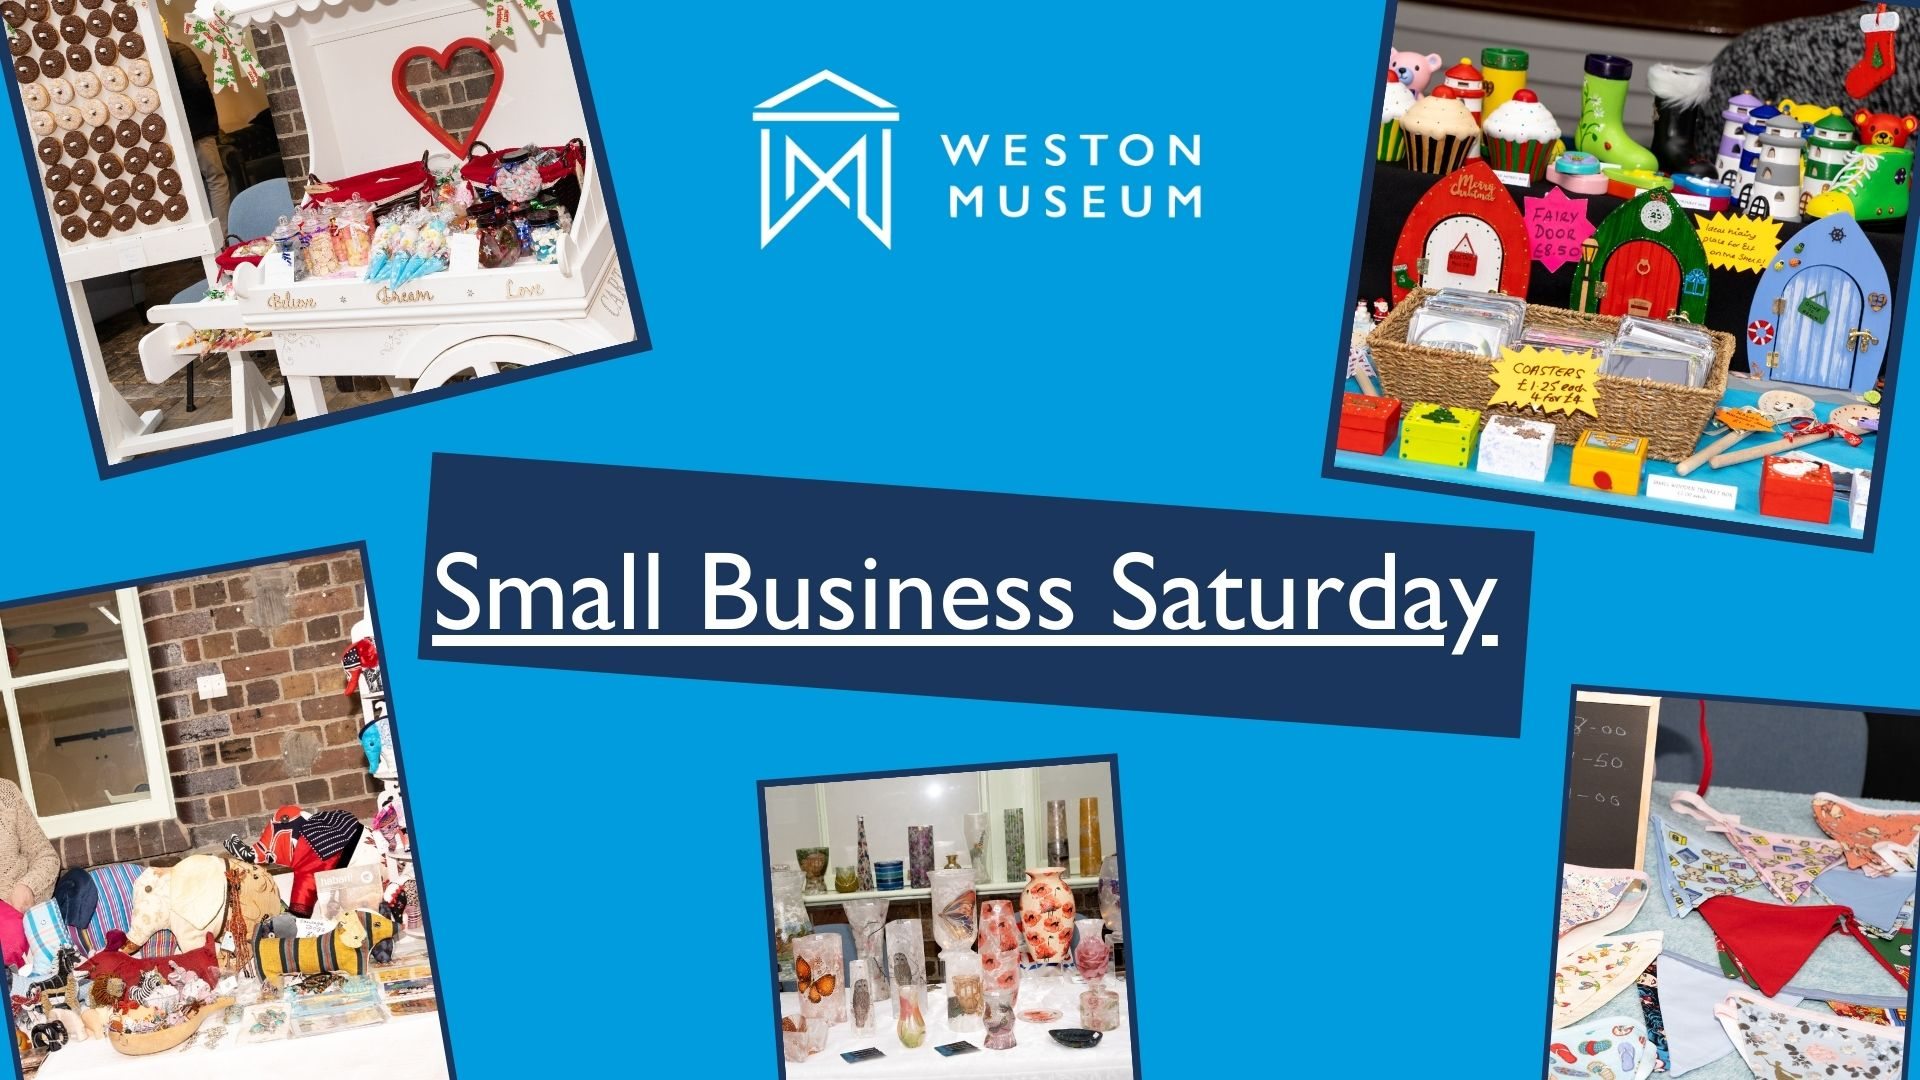 Small Business Saturday website